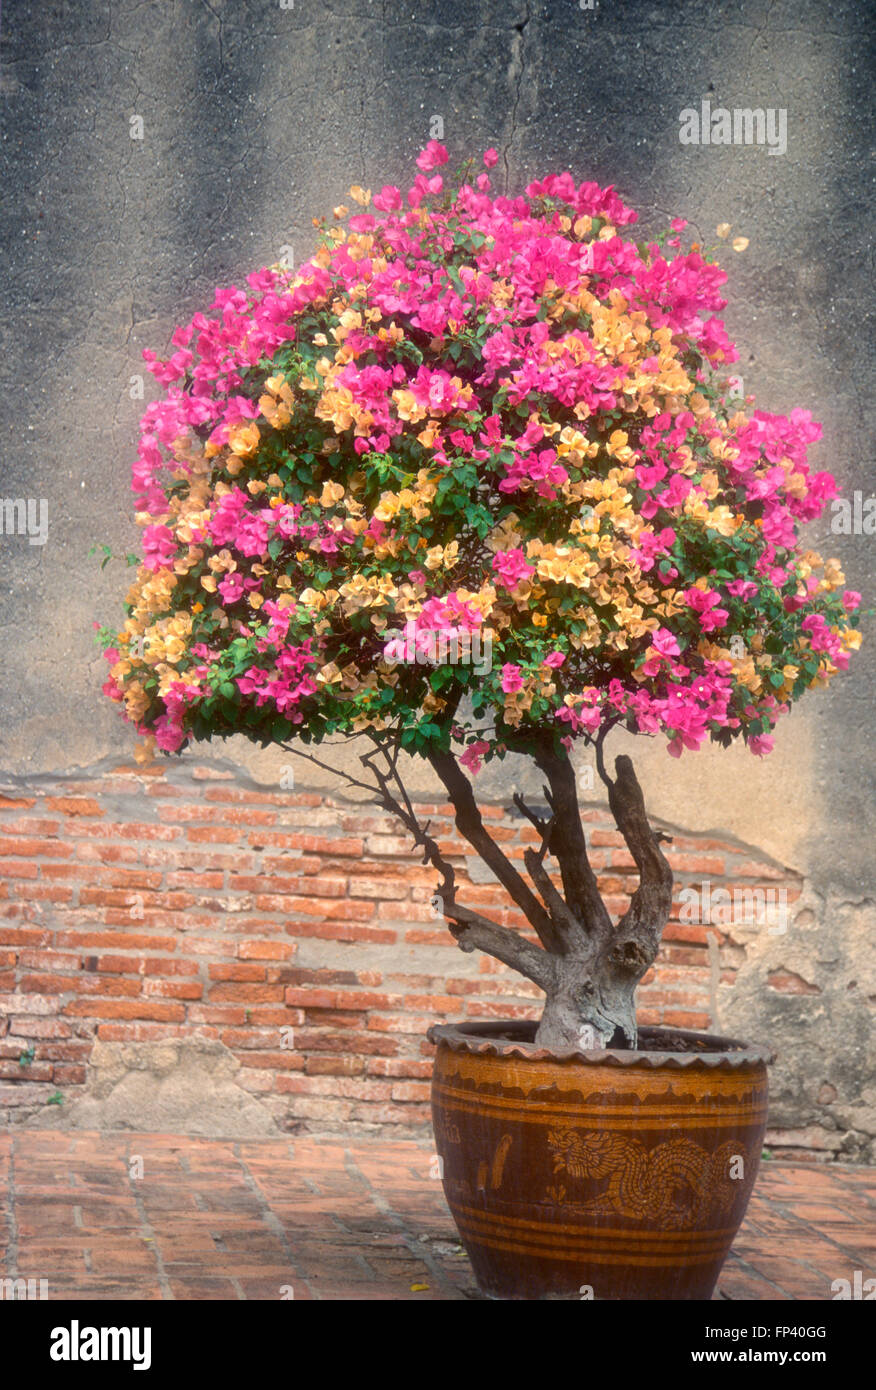 orange et rose bougainvillier en pot de jardin banque d'images